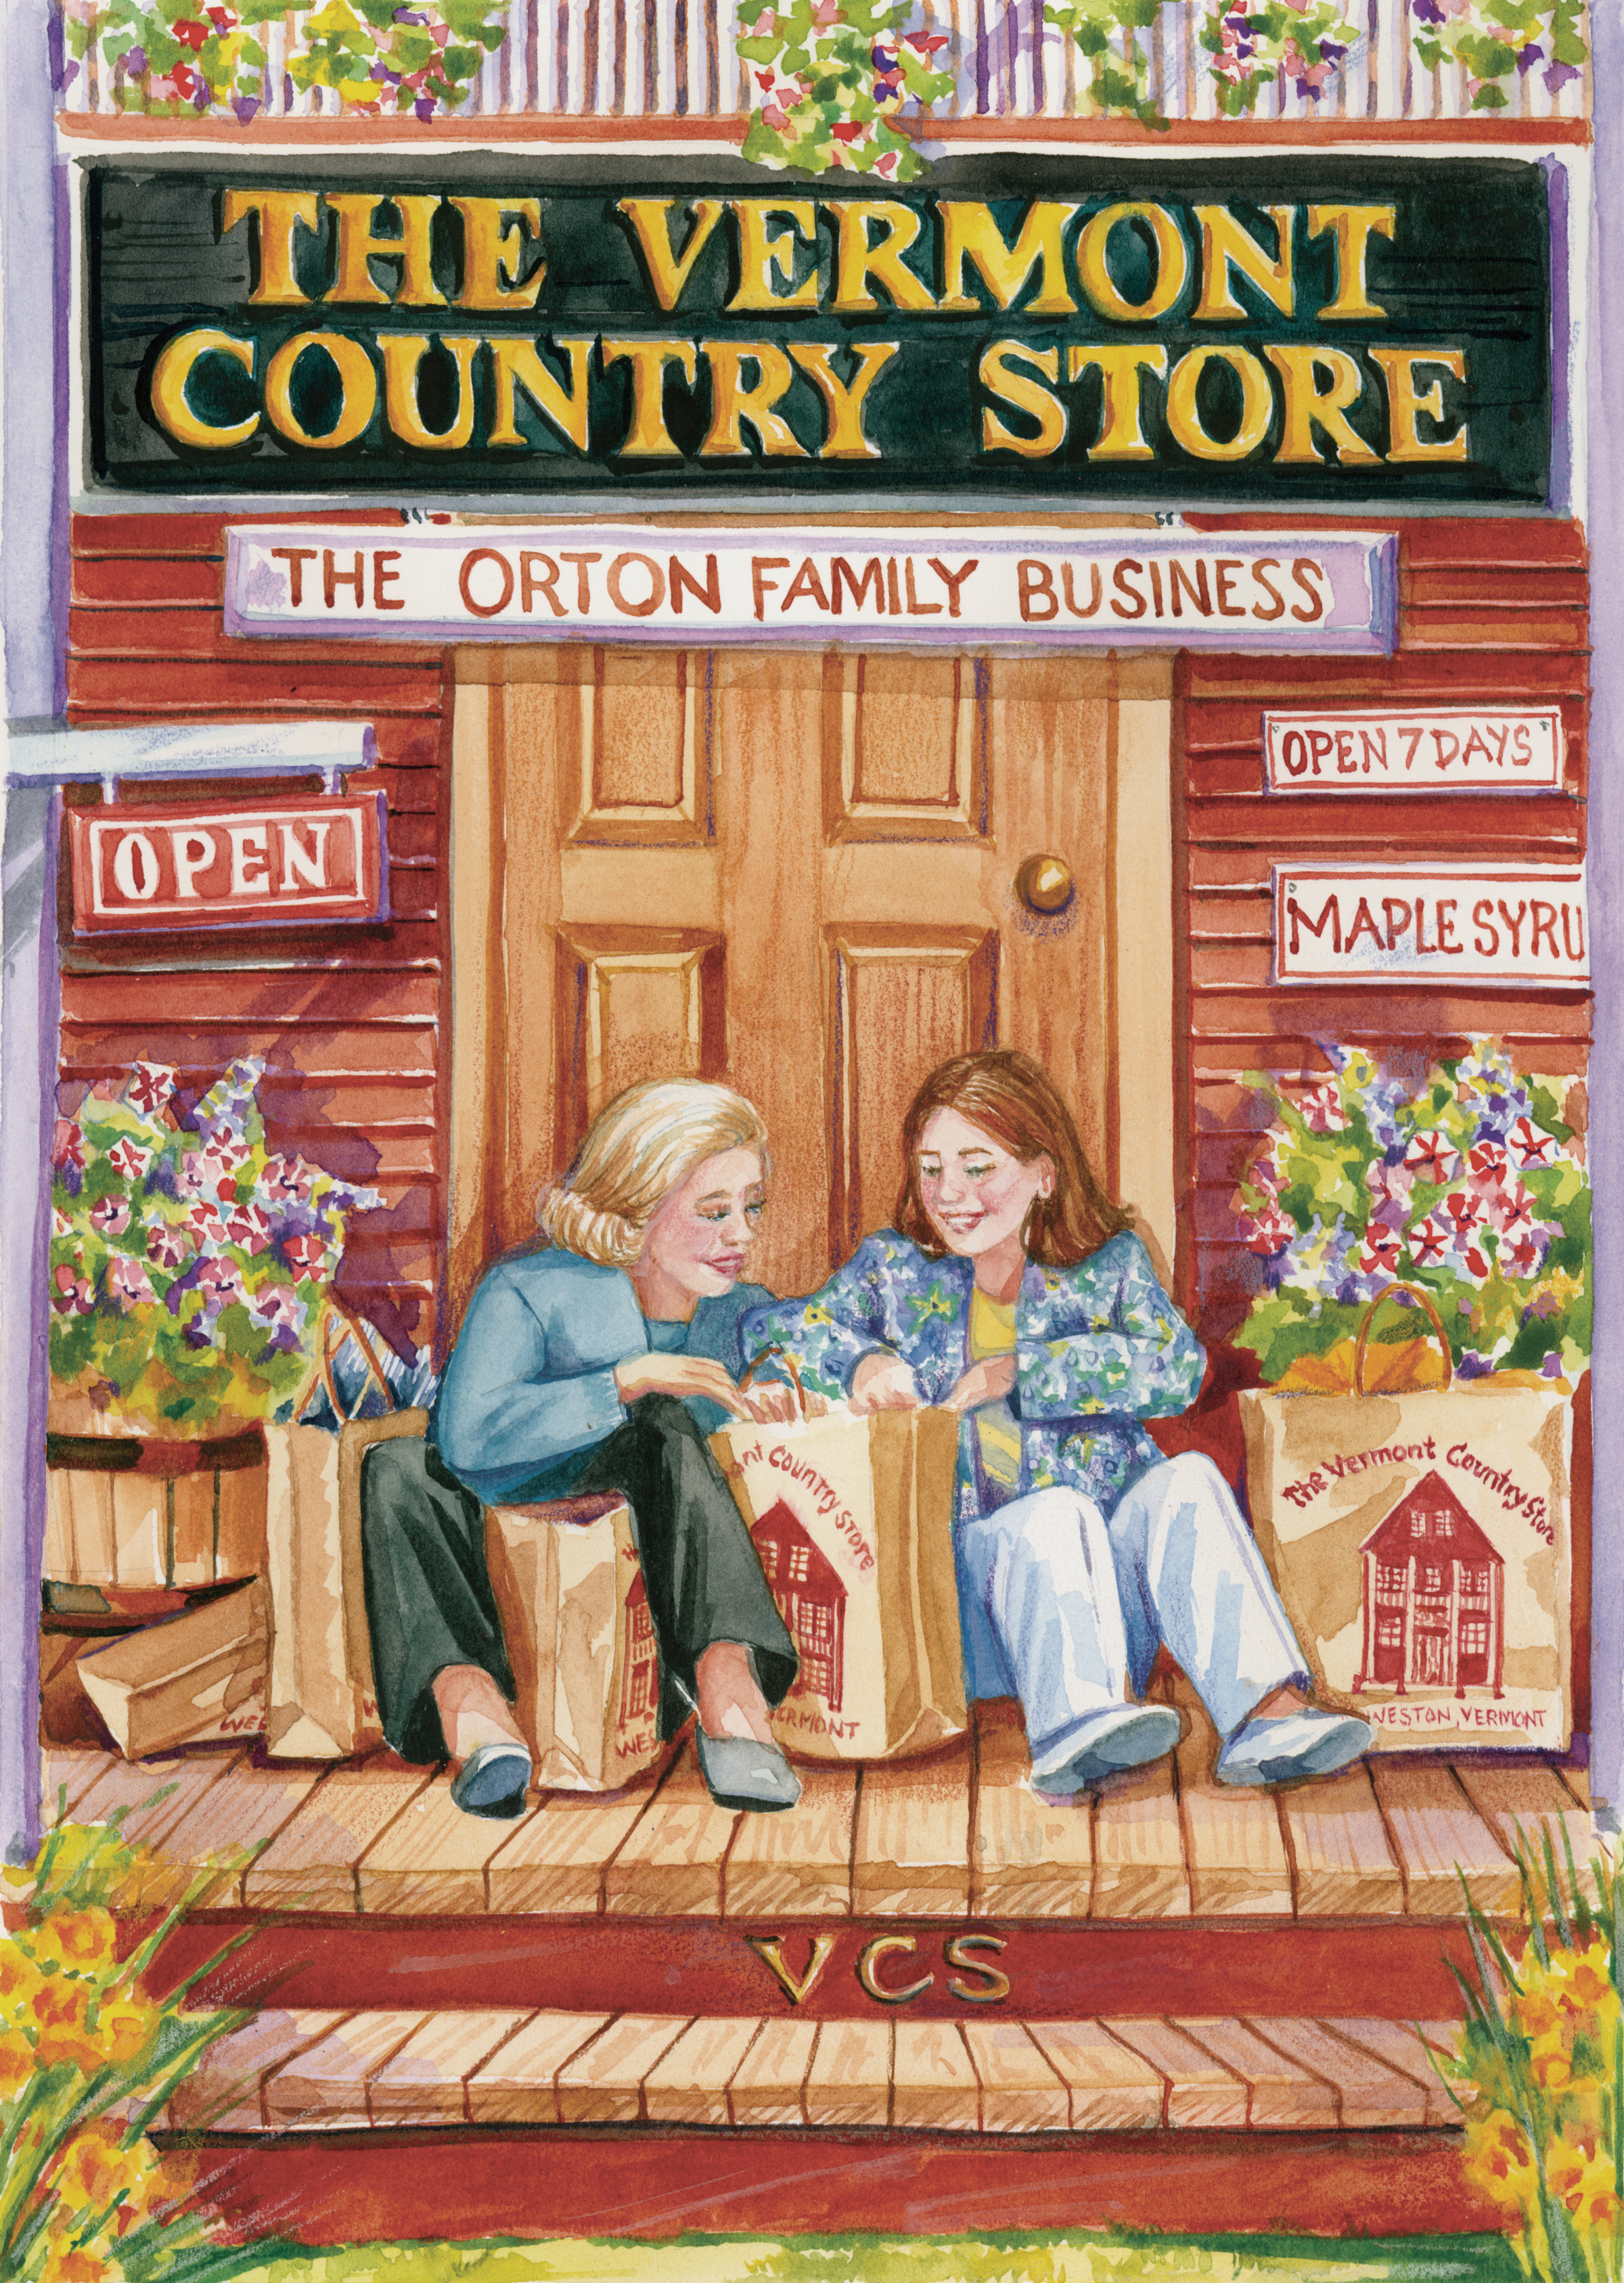 The Vermont Country Store illustration, The Vermont Country Store, The Orton Family Business, Open, Open 7 days, maple syrup, VCS